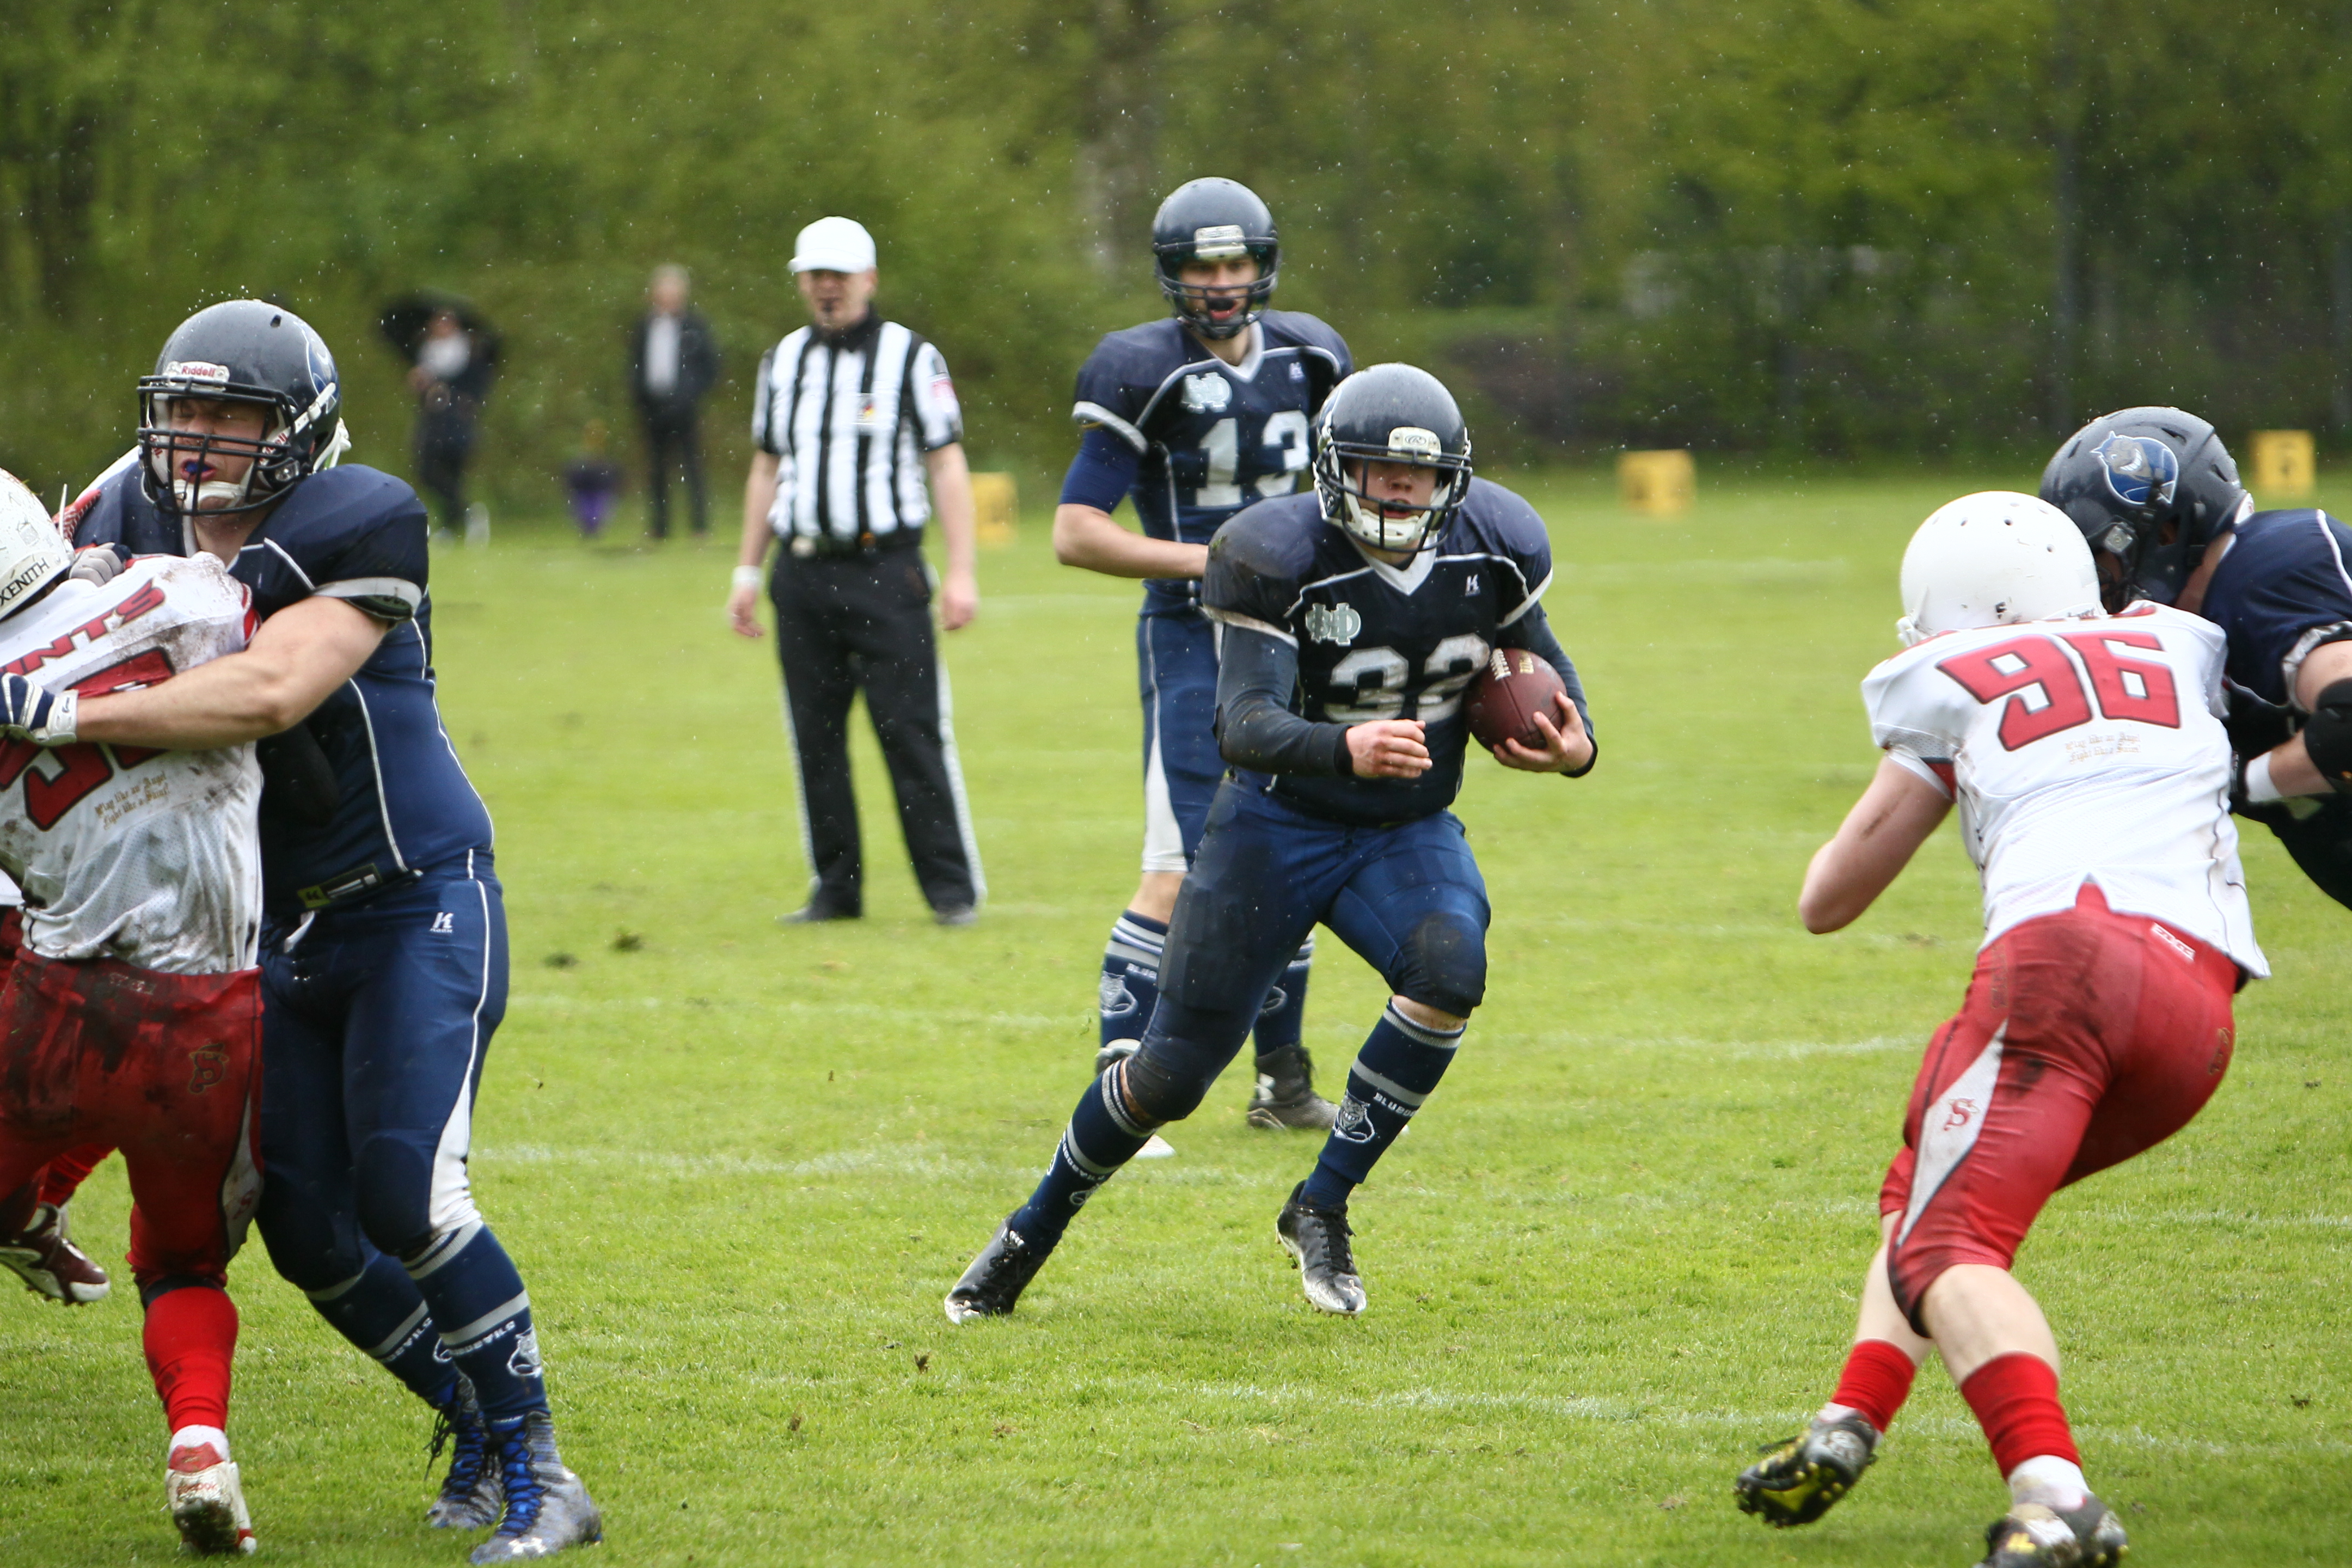 Hamburg Blue Devils vs Heide Saints